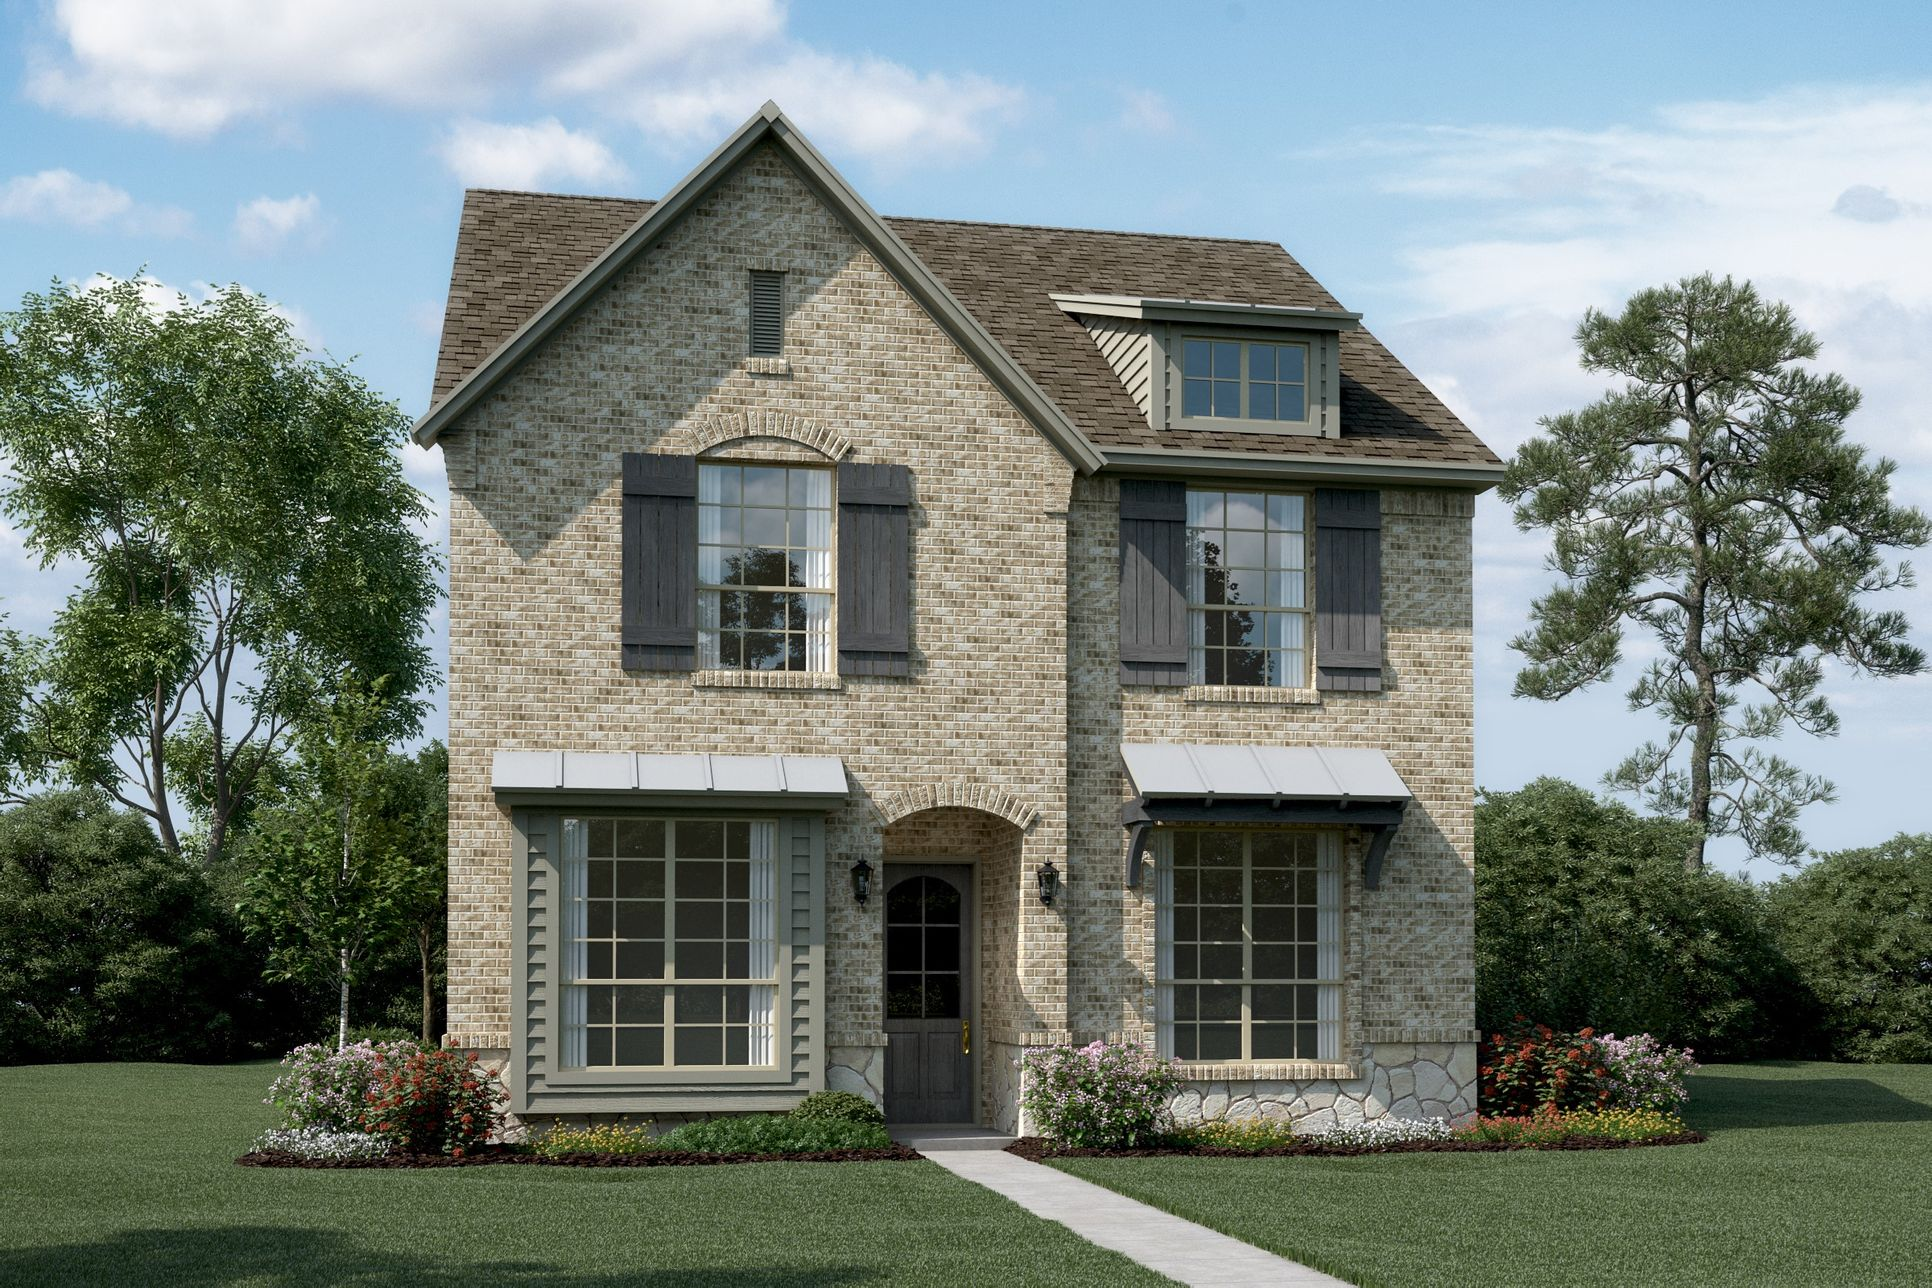 Exterior:Springdale - T - Shown with stone